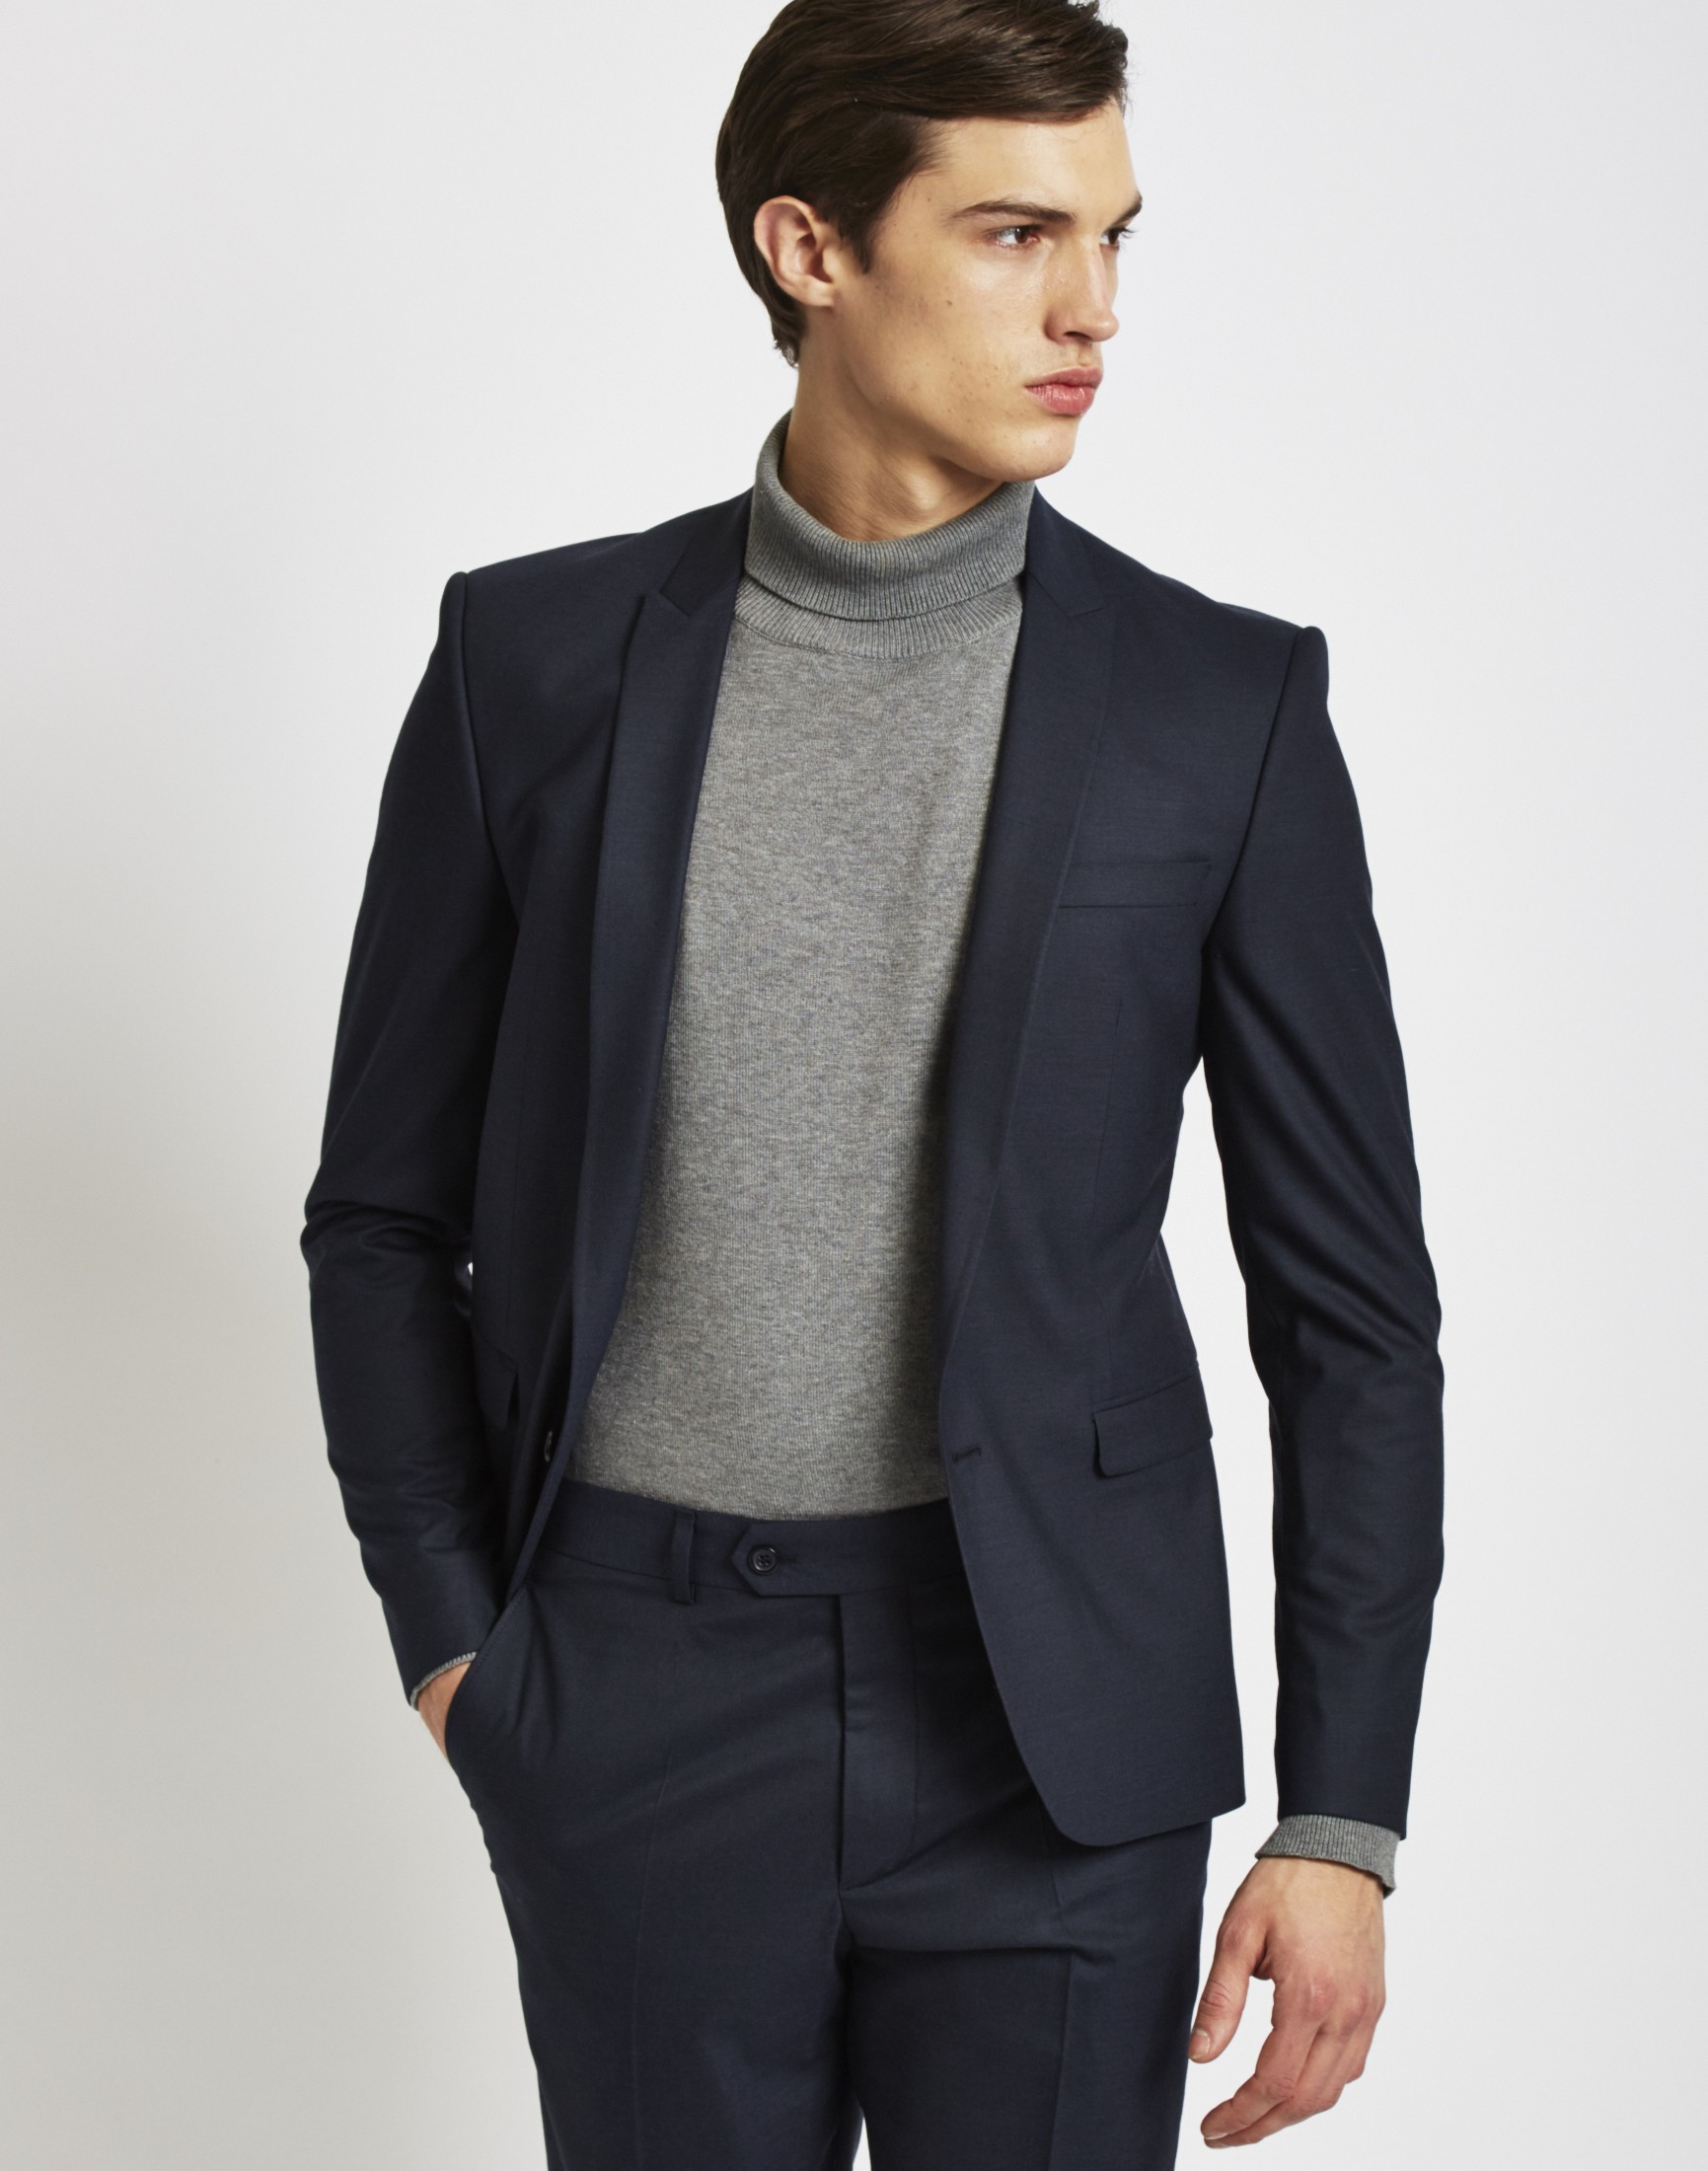 Drawn suit classic navy Jacket Ways Wear Fit The